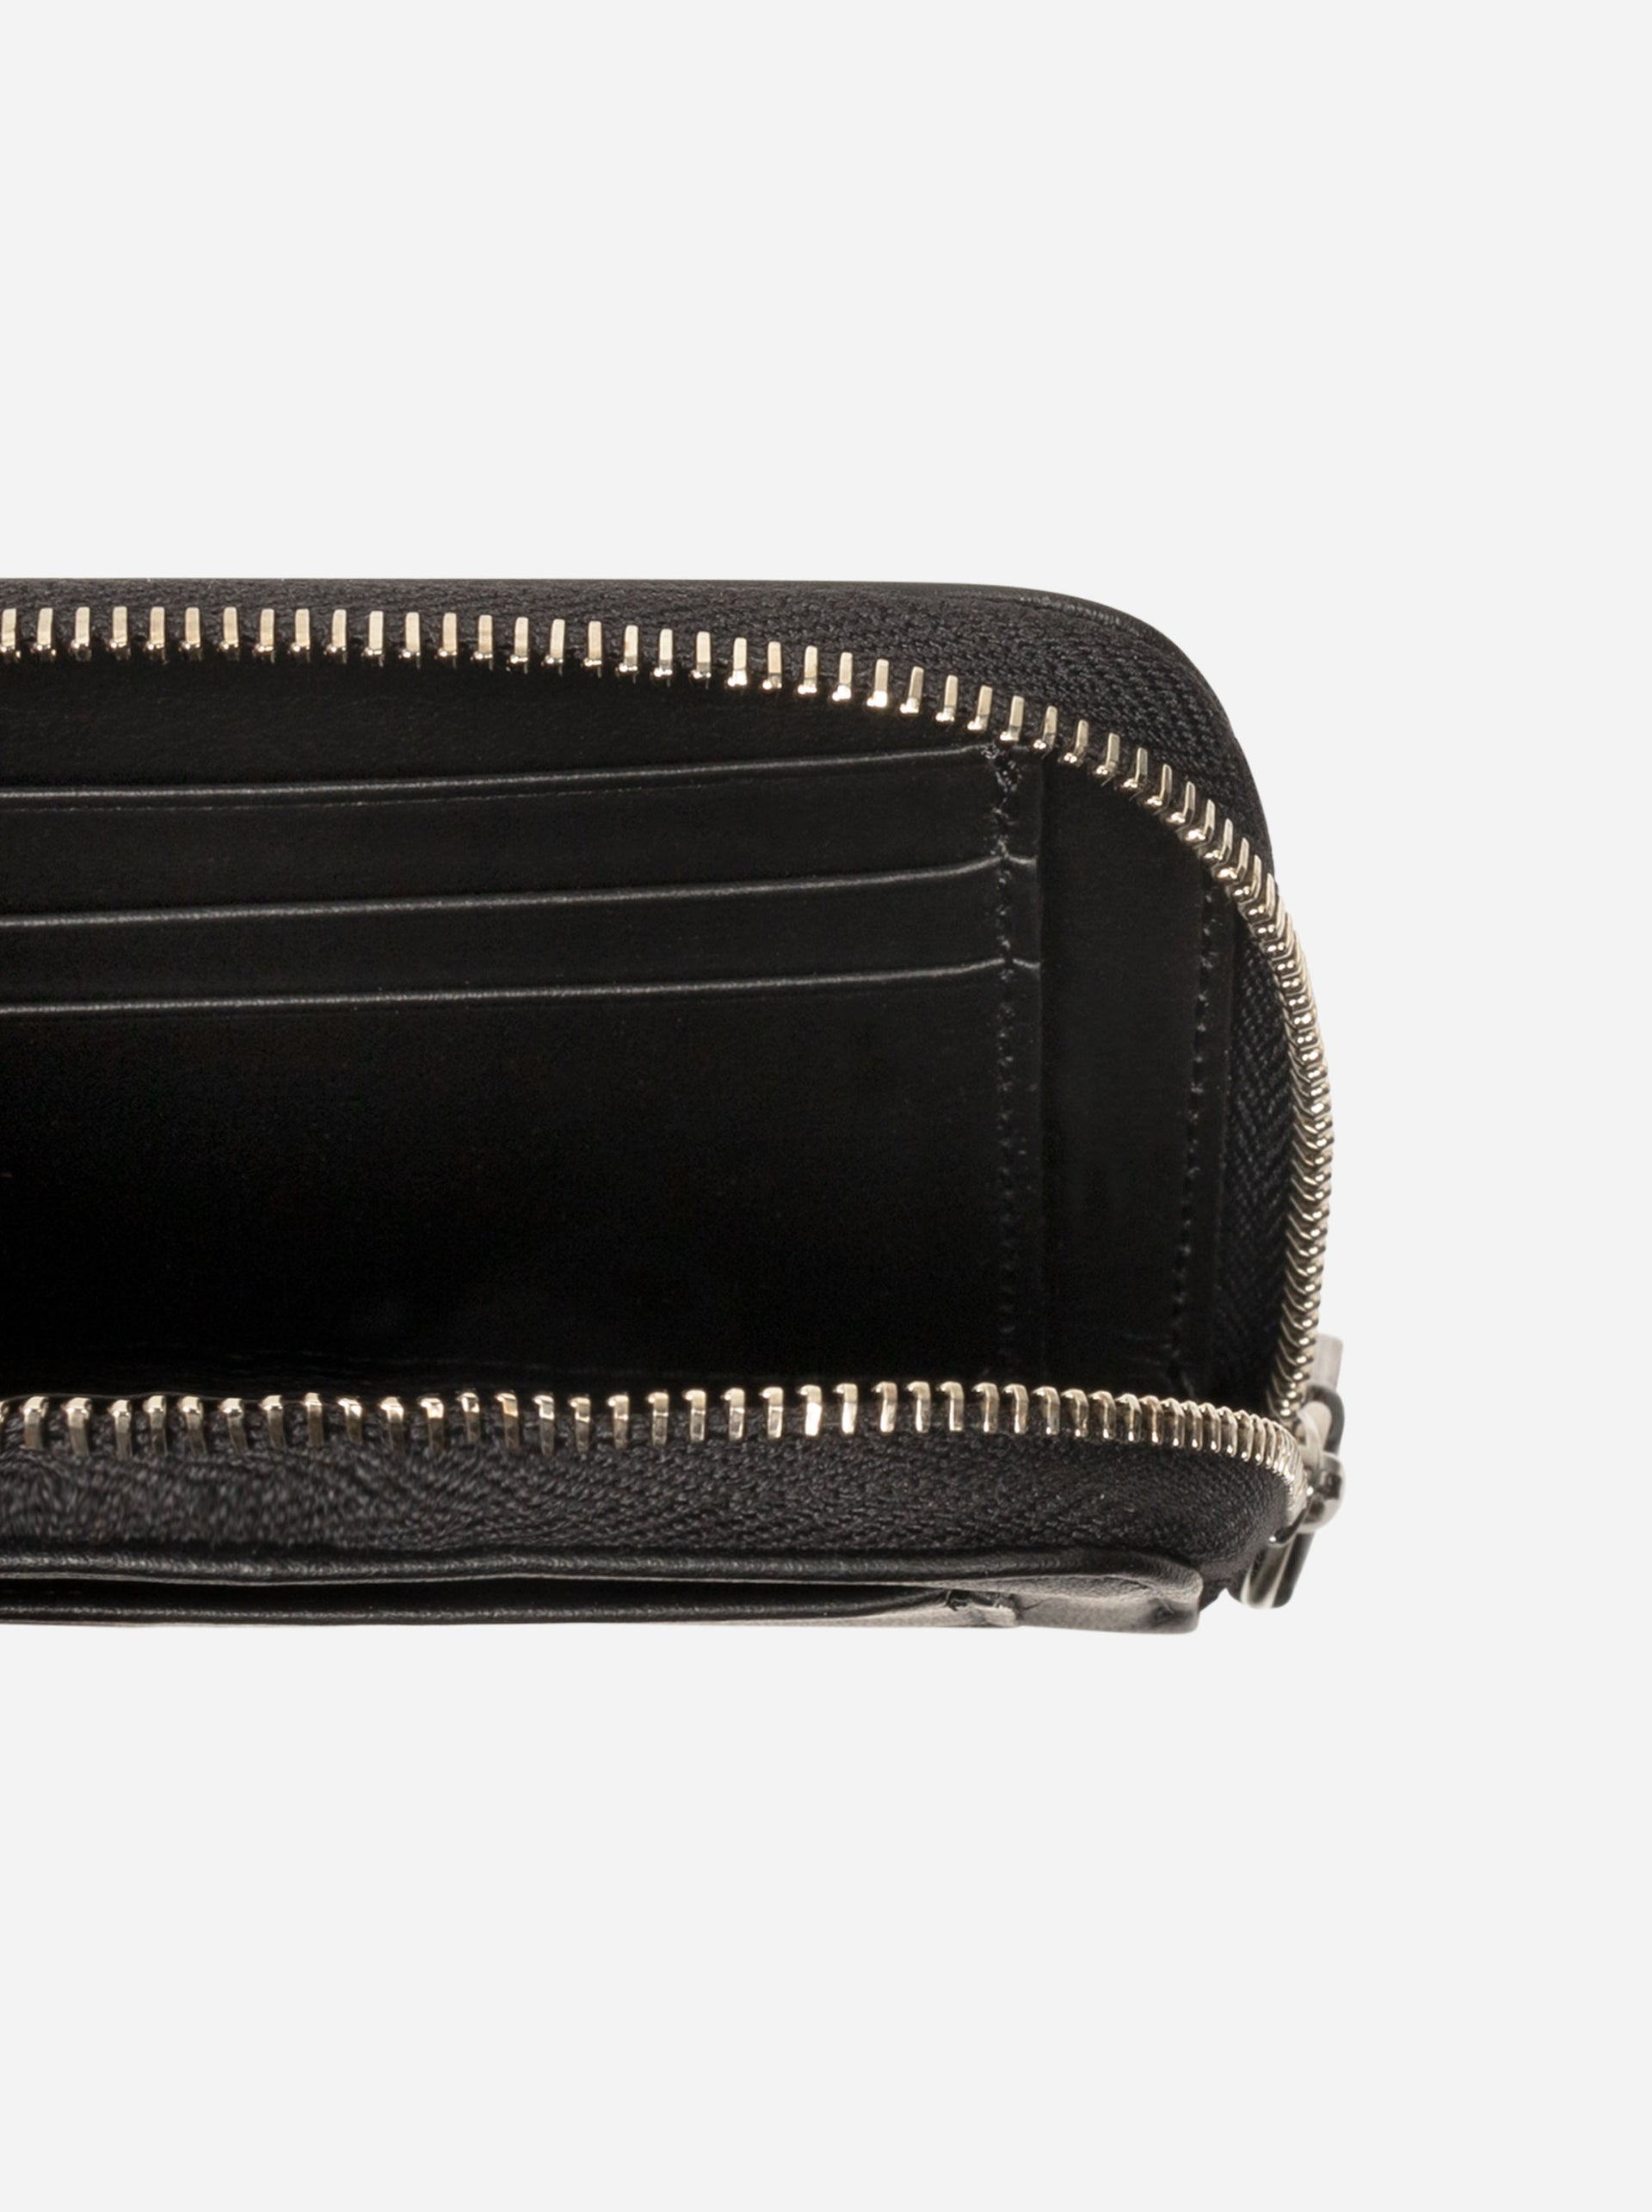 The Wallet - Black